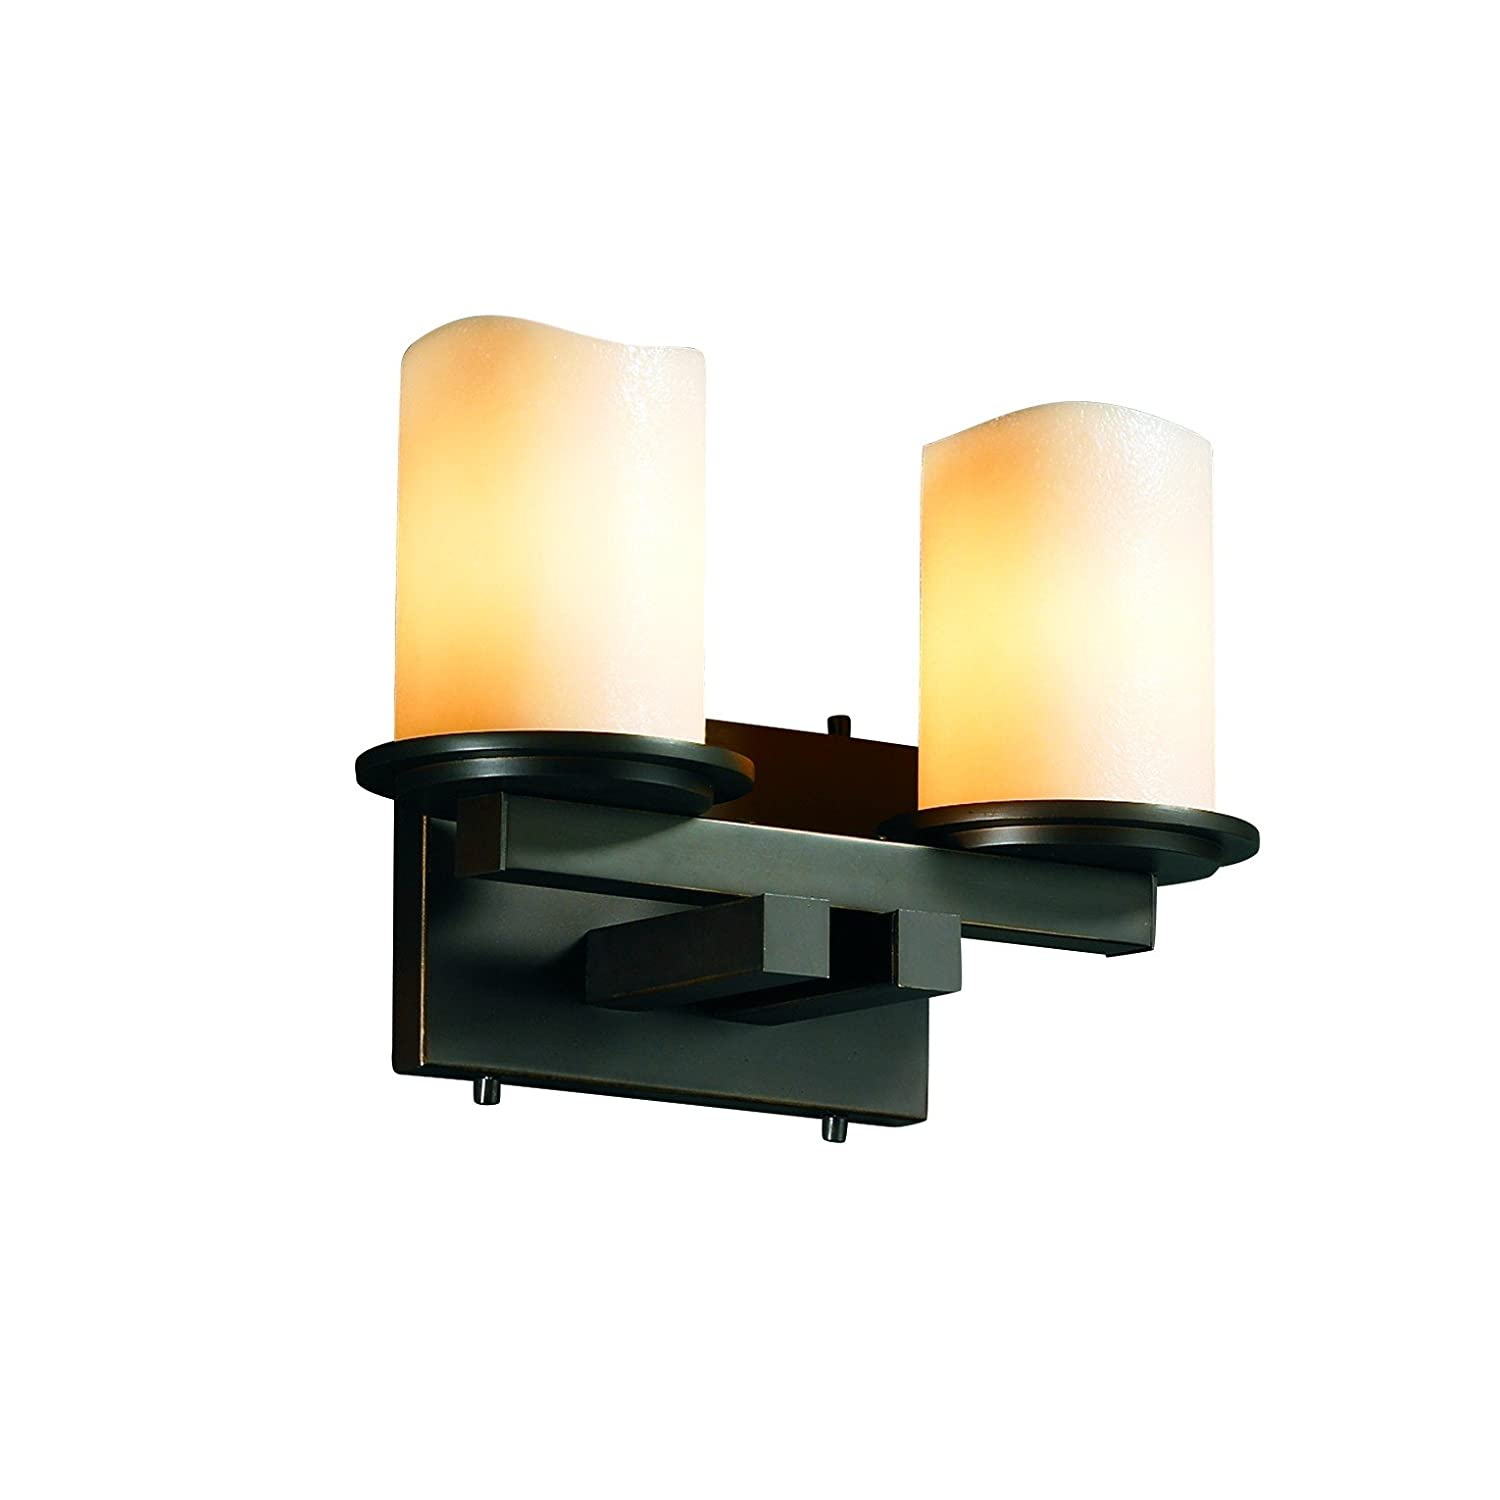 Justice Design Group CandleAria 2-Light Bath Bar - Dark Bronze Finish with Cream Faux Candle Resin Shade